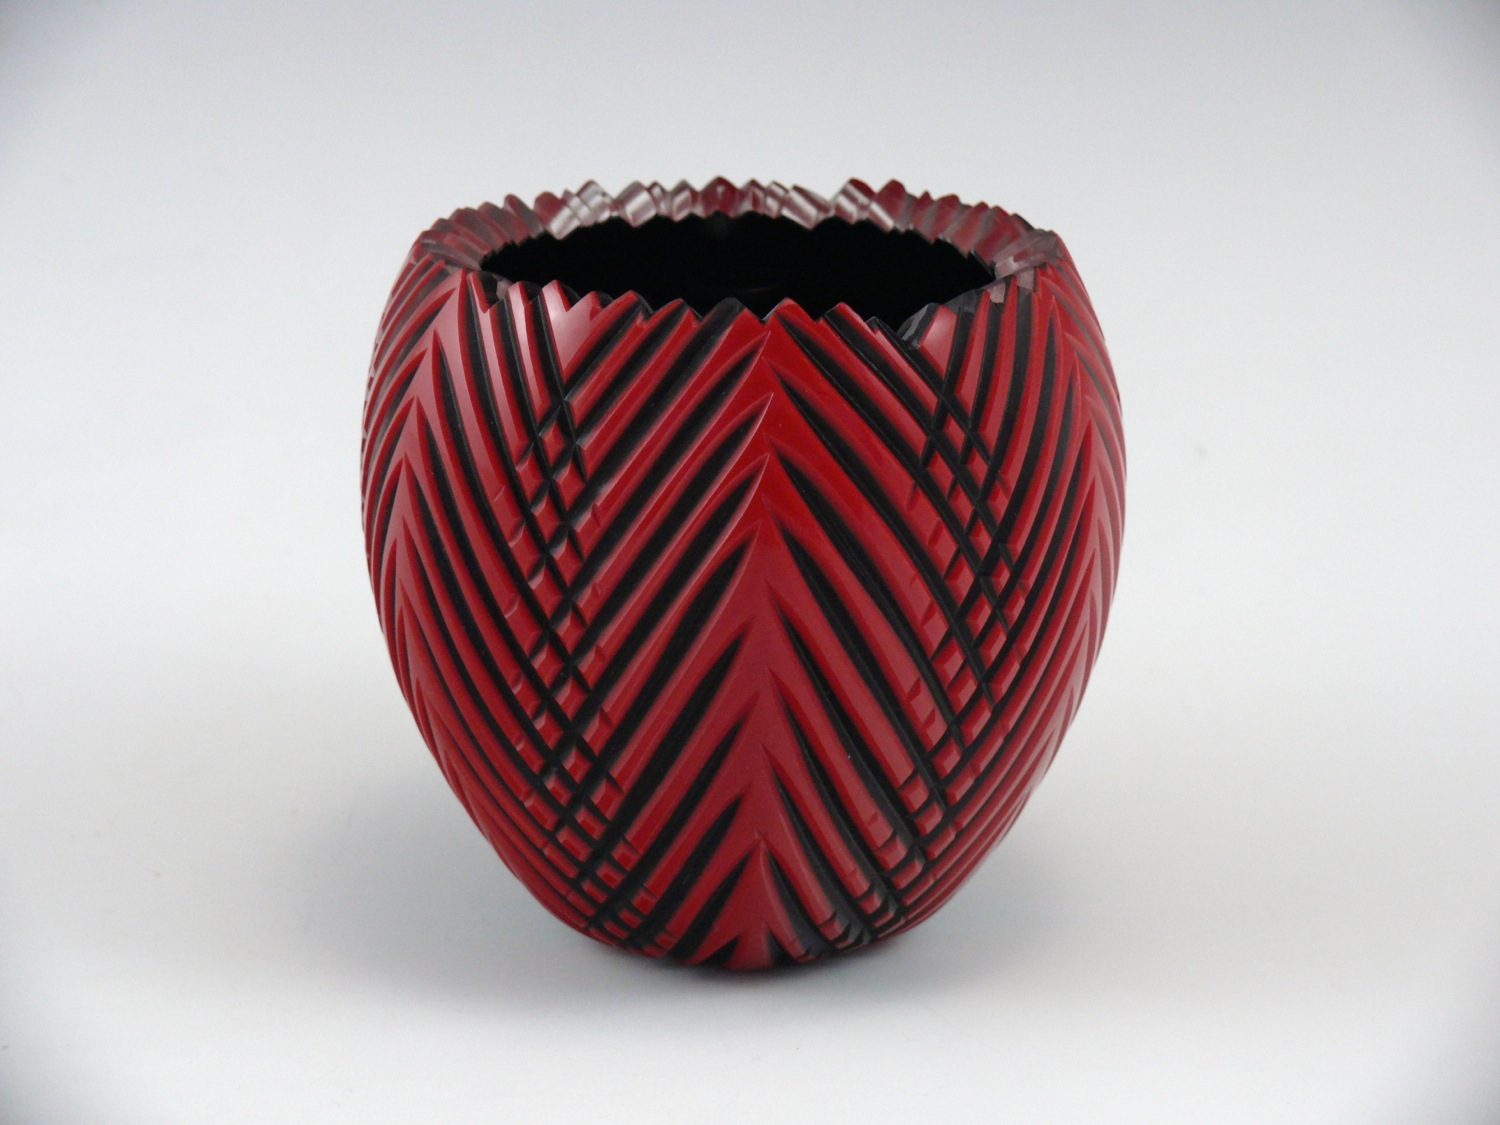 Nick Leonoff-Blown & Carved Glass-03.JPG